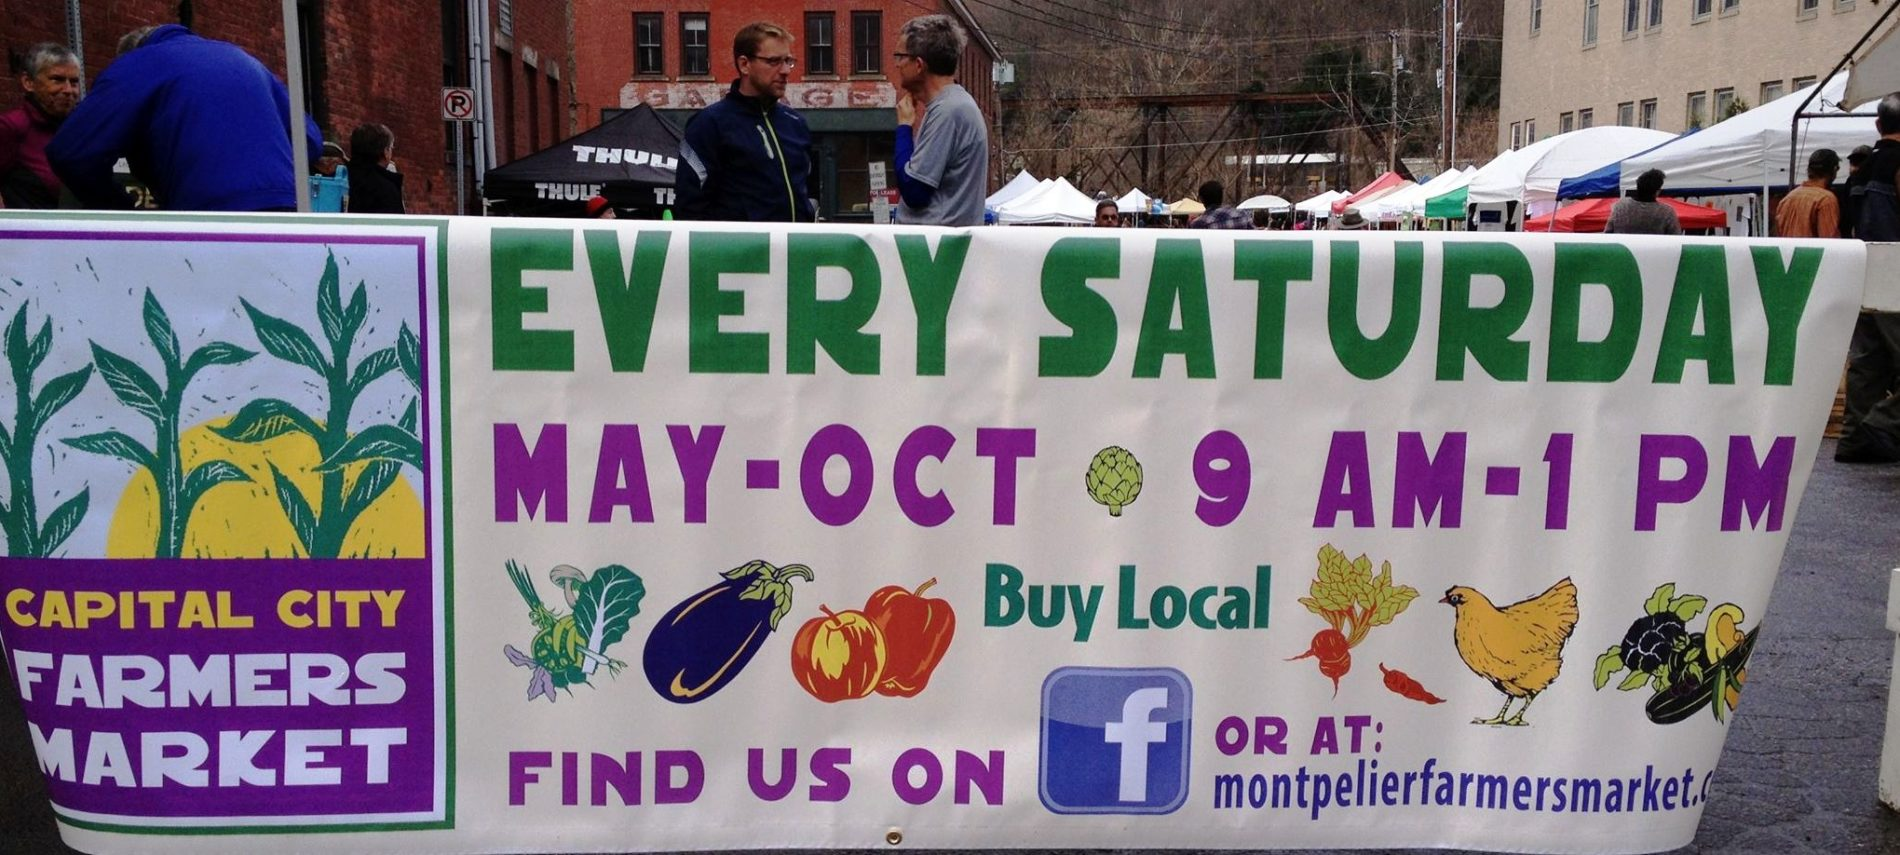 large banner sign at Farmers markets in Northern Vermont